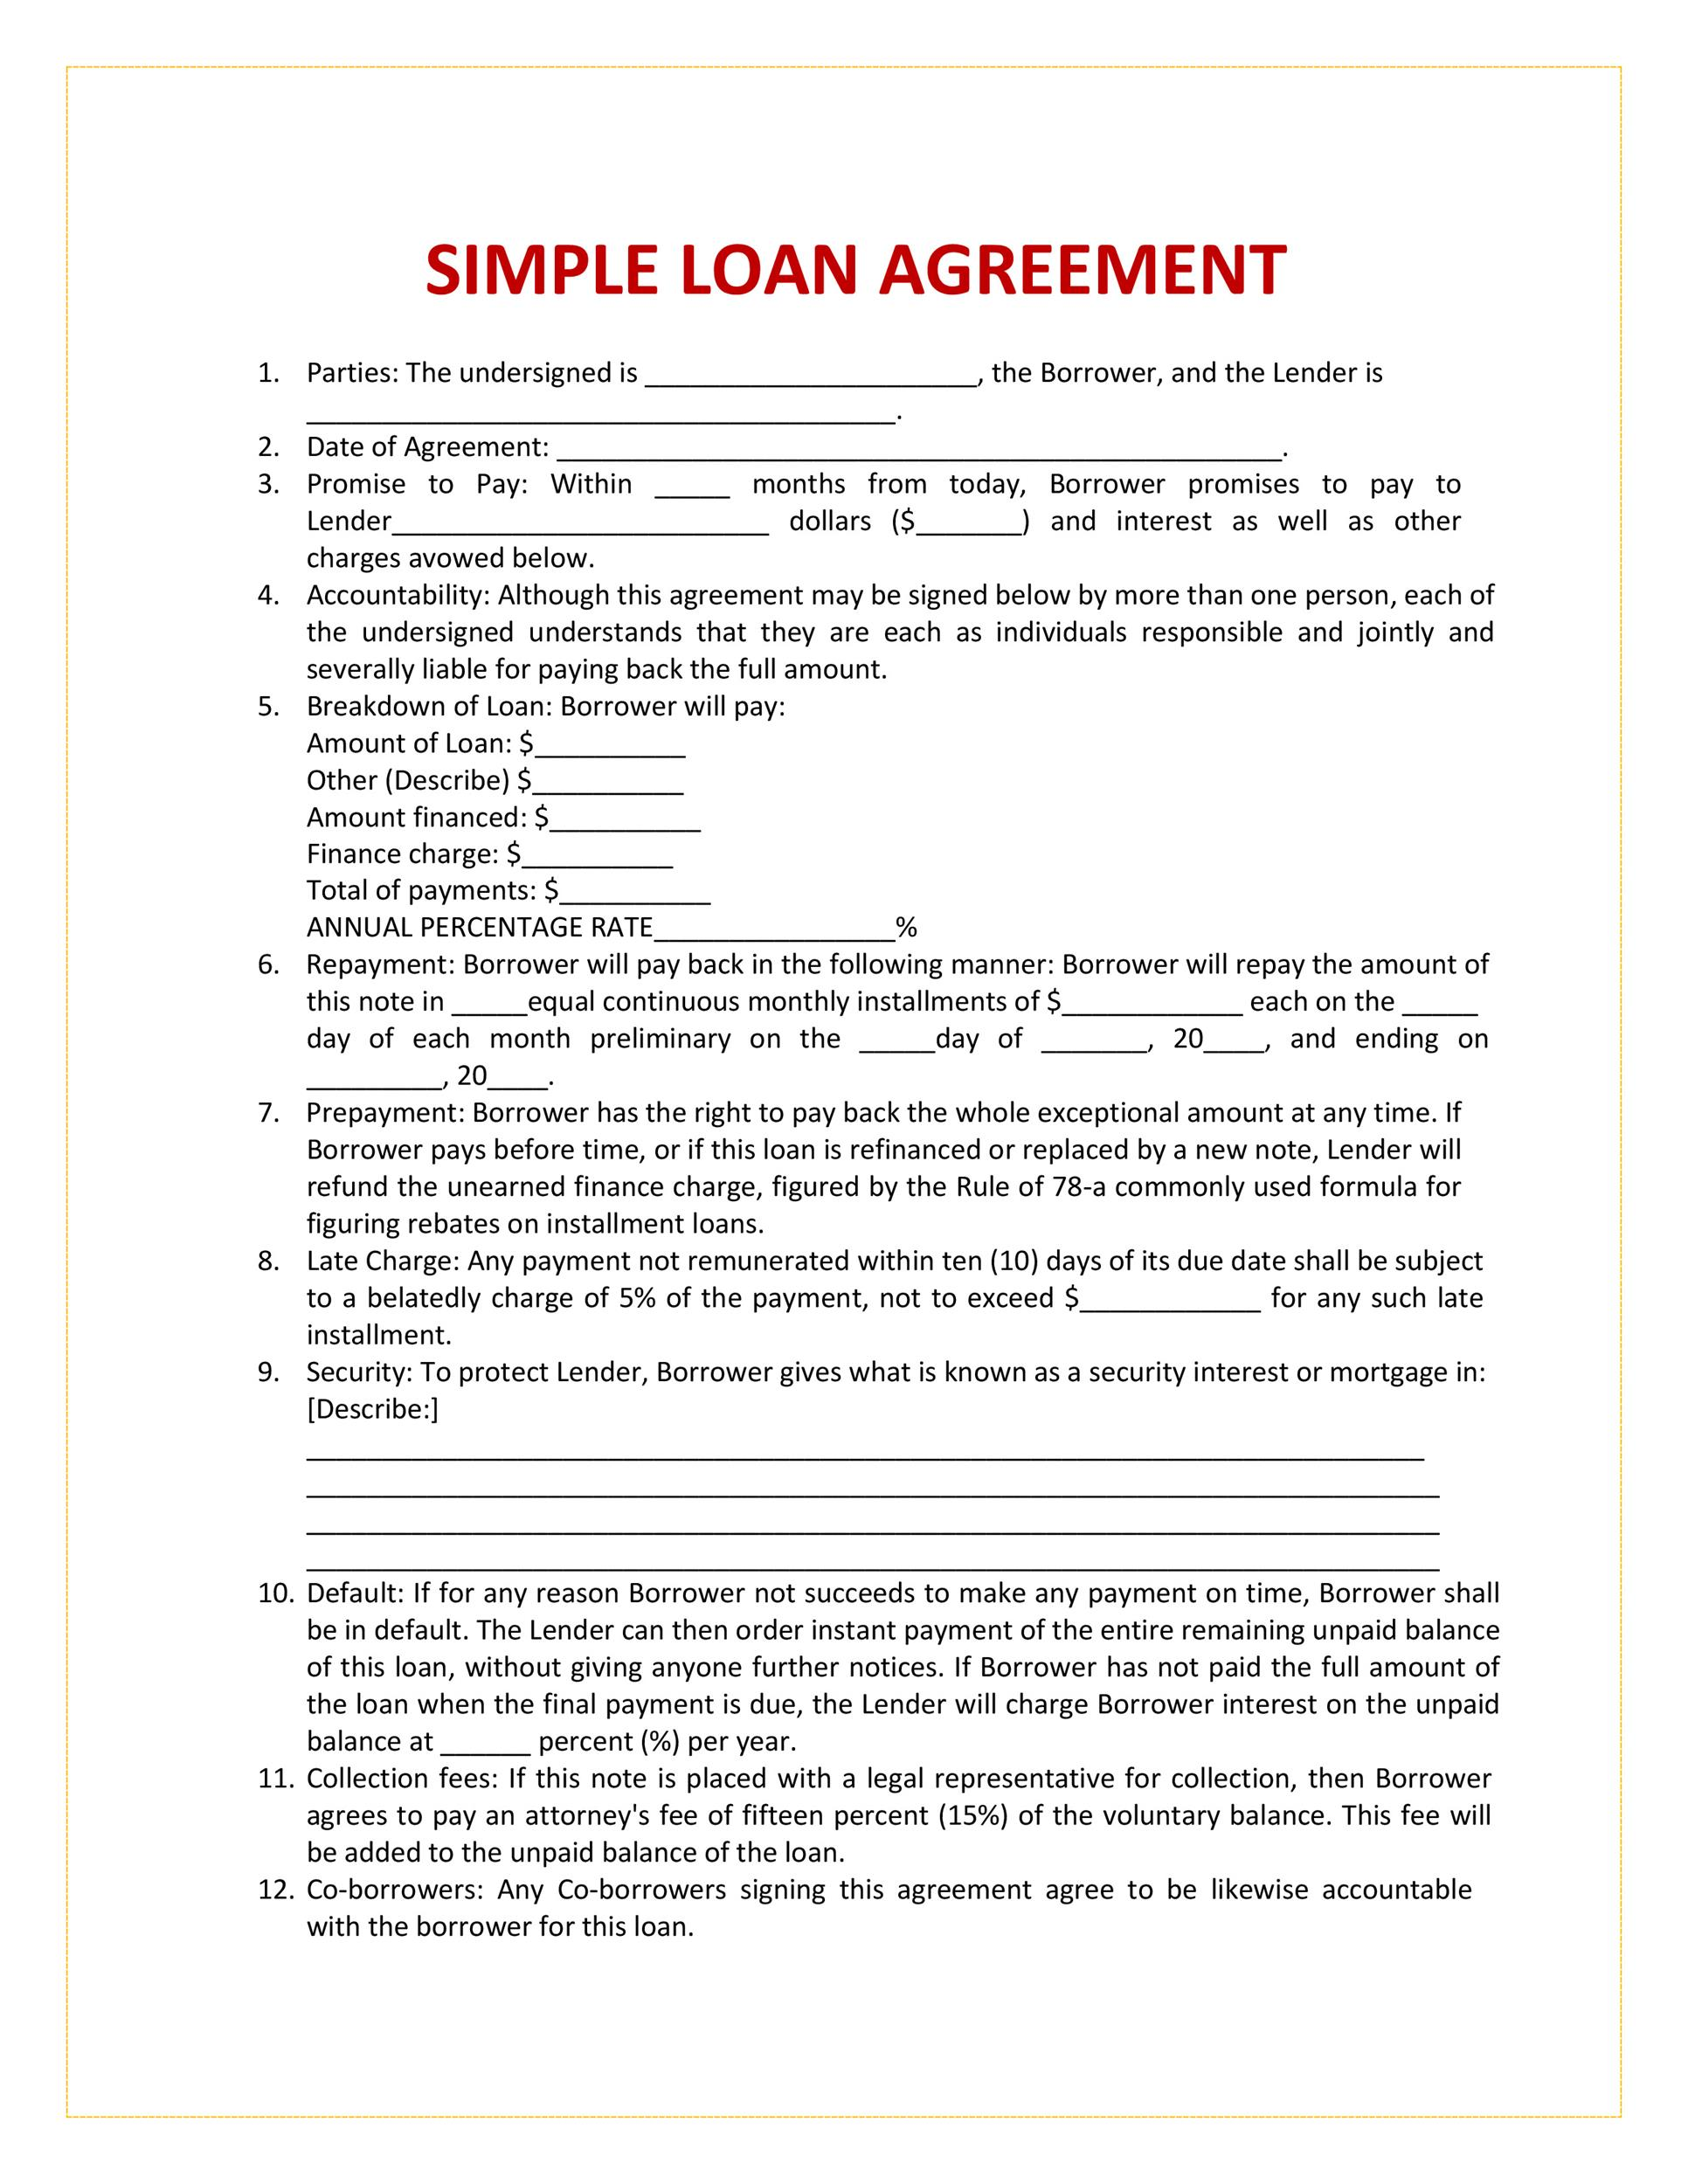 Private loans between family members and friends are a convenient, flexible and. 40 Free Loan Agreement Templates Word Pdf Á… Templatelab